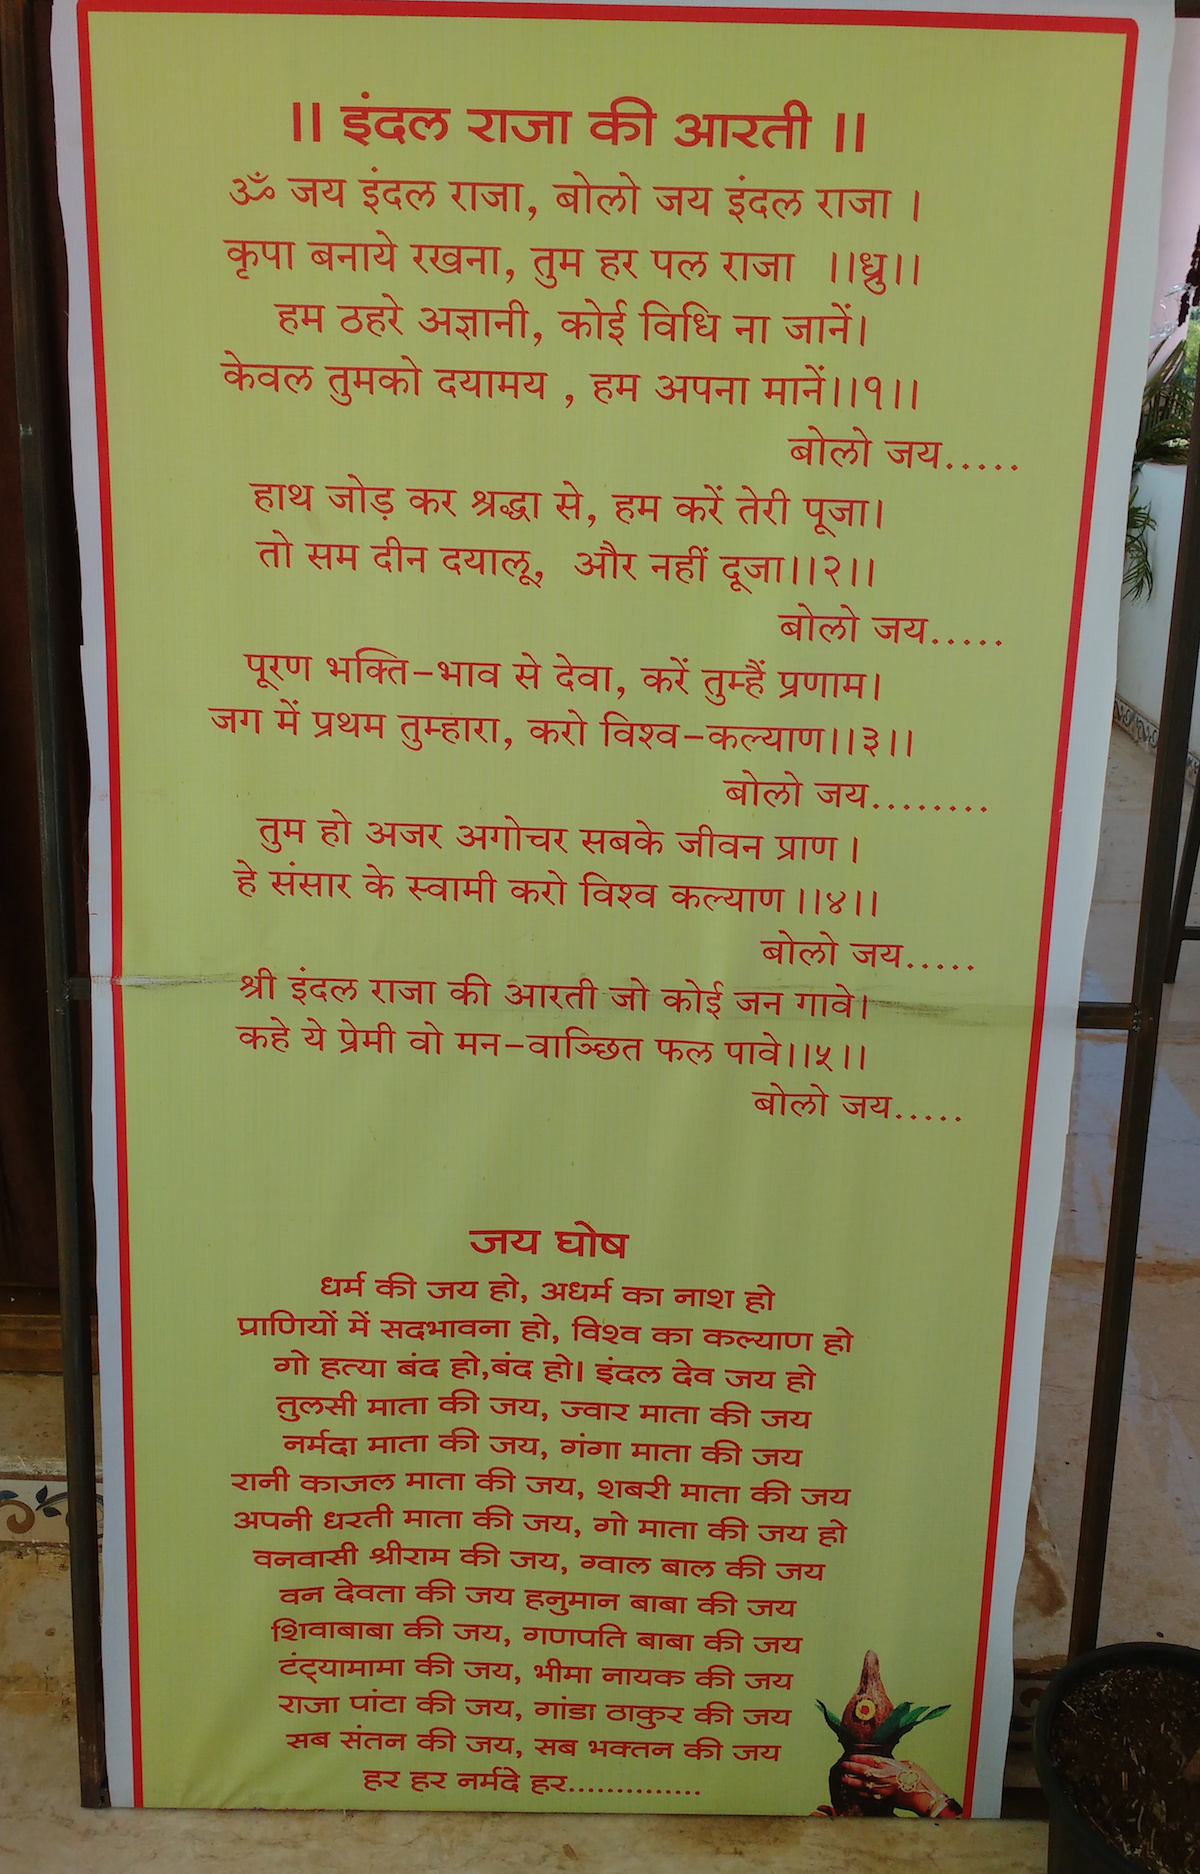 Flex boards with Indal chalisa, Indal Bhajan, and Indal ghoshana - hymns to Indal